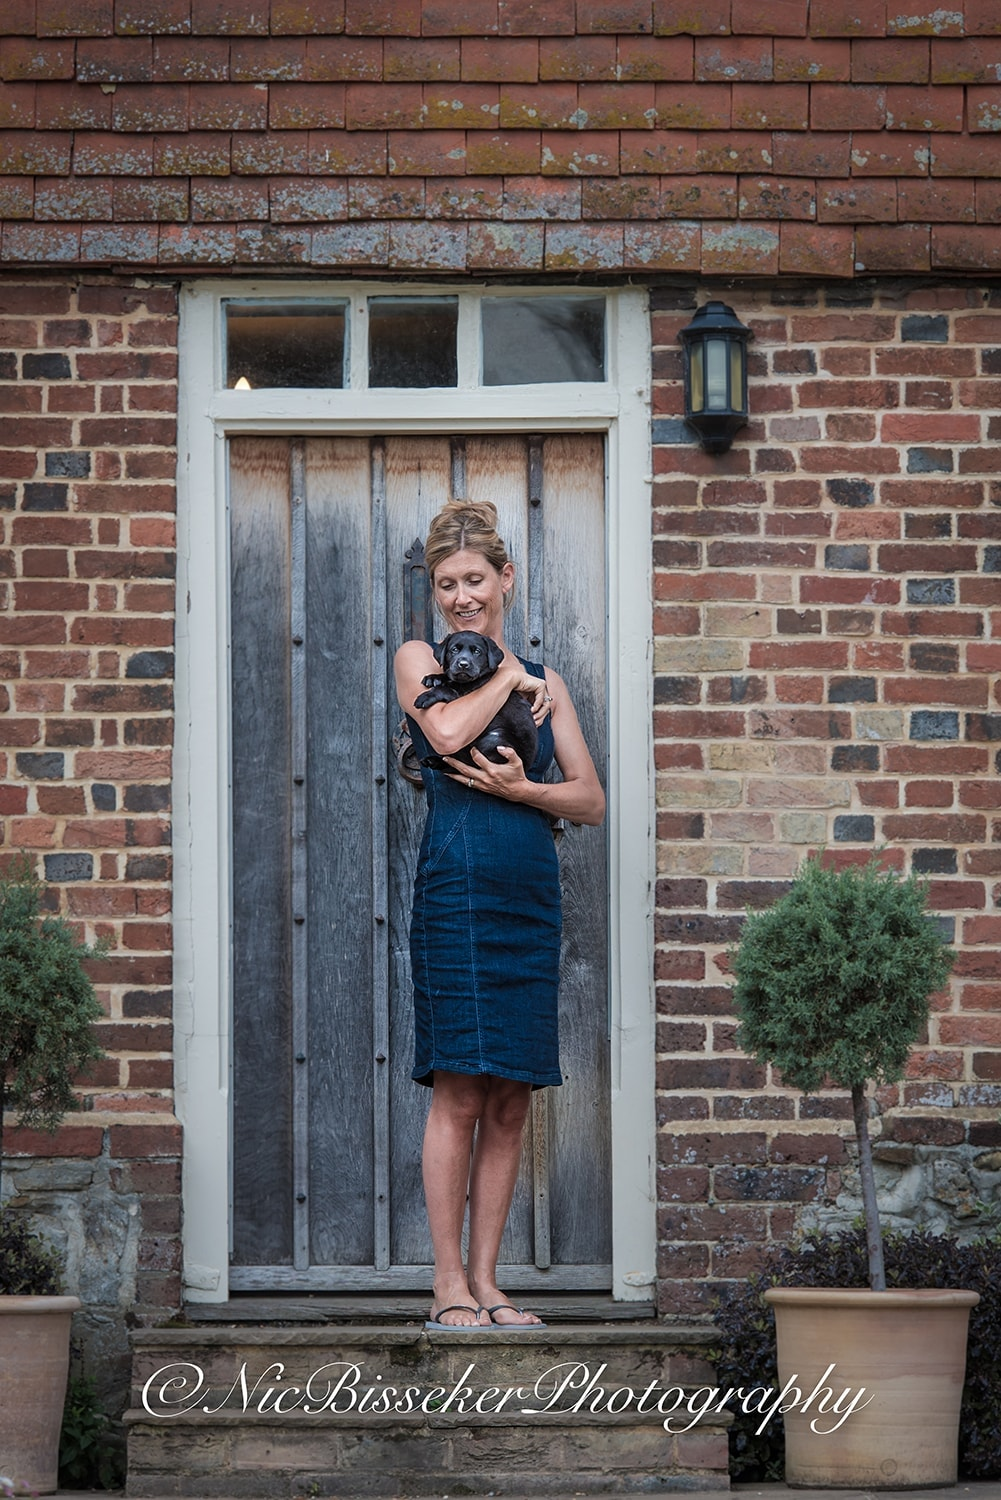 Nic Bisseker Photography Dog photoshoot west sussex